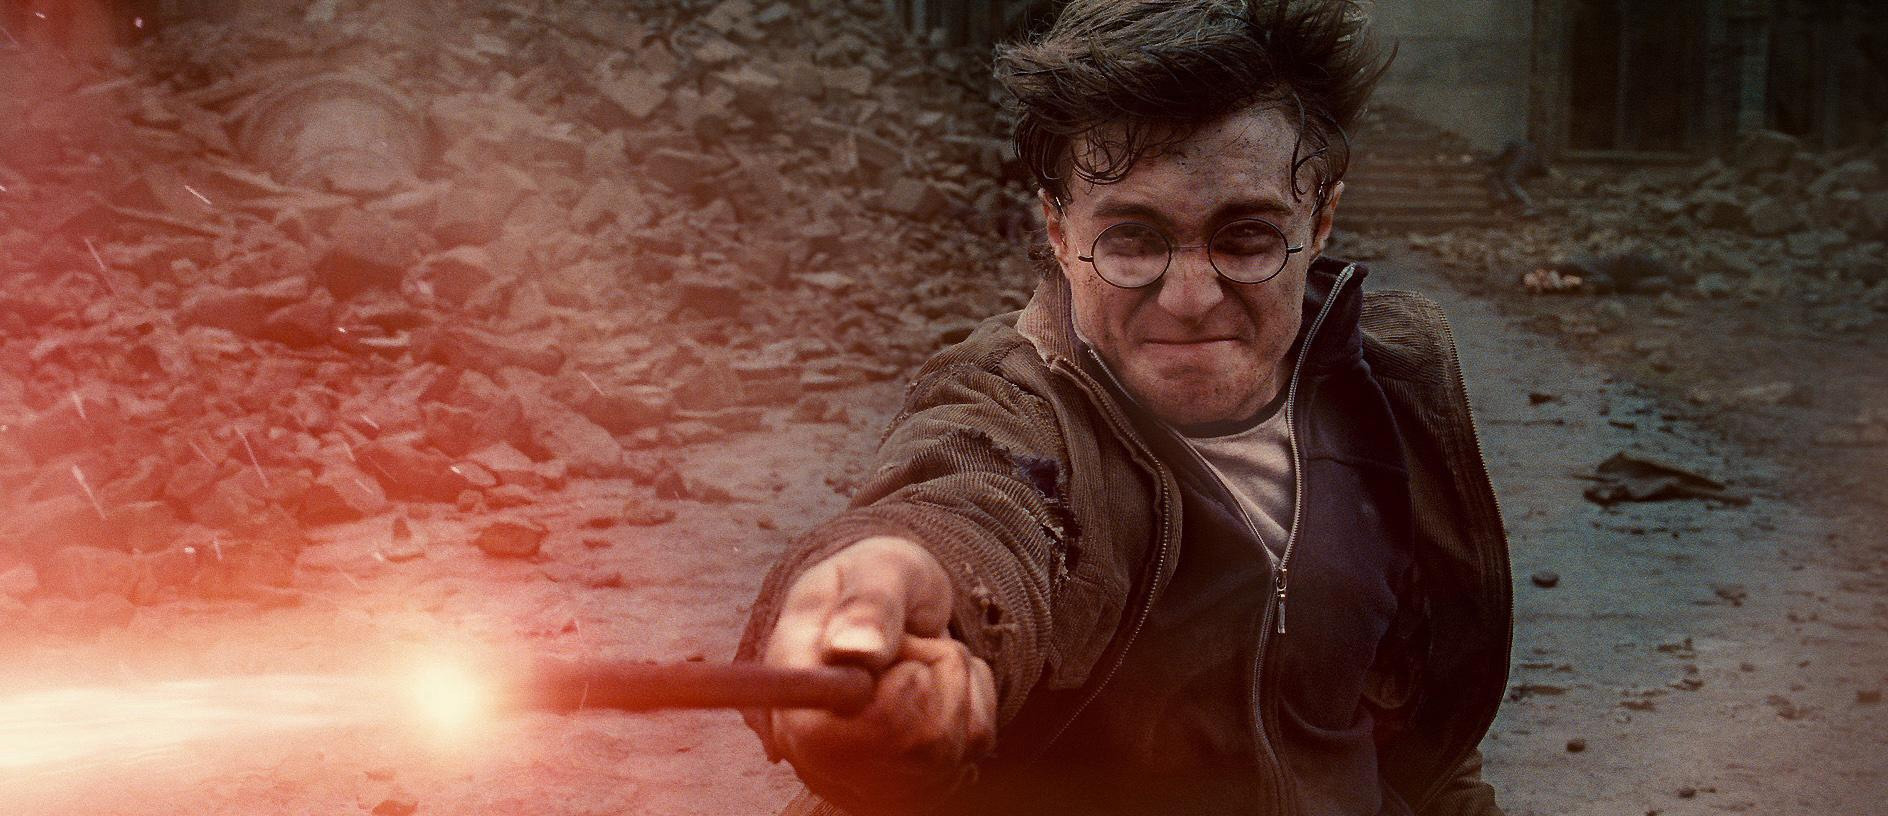 Harry Potter And The Deathly Hallows - Part 2.